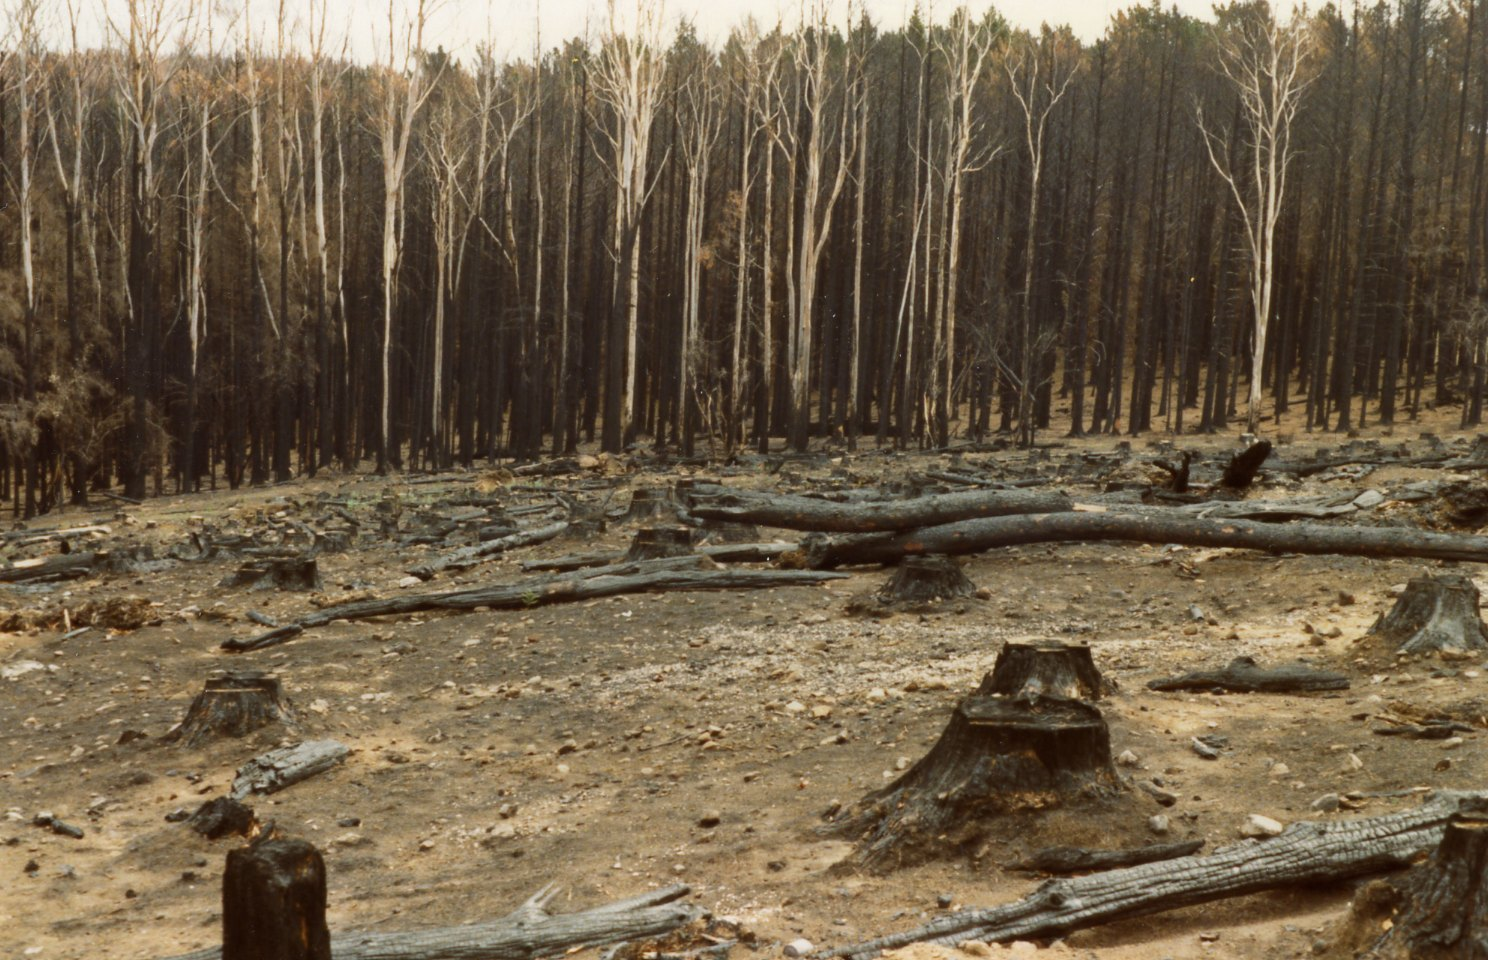 Burnt_pine_forest_at_Mount_Macedon_after_the_1983_Ash_Wednesday_bushfires